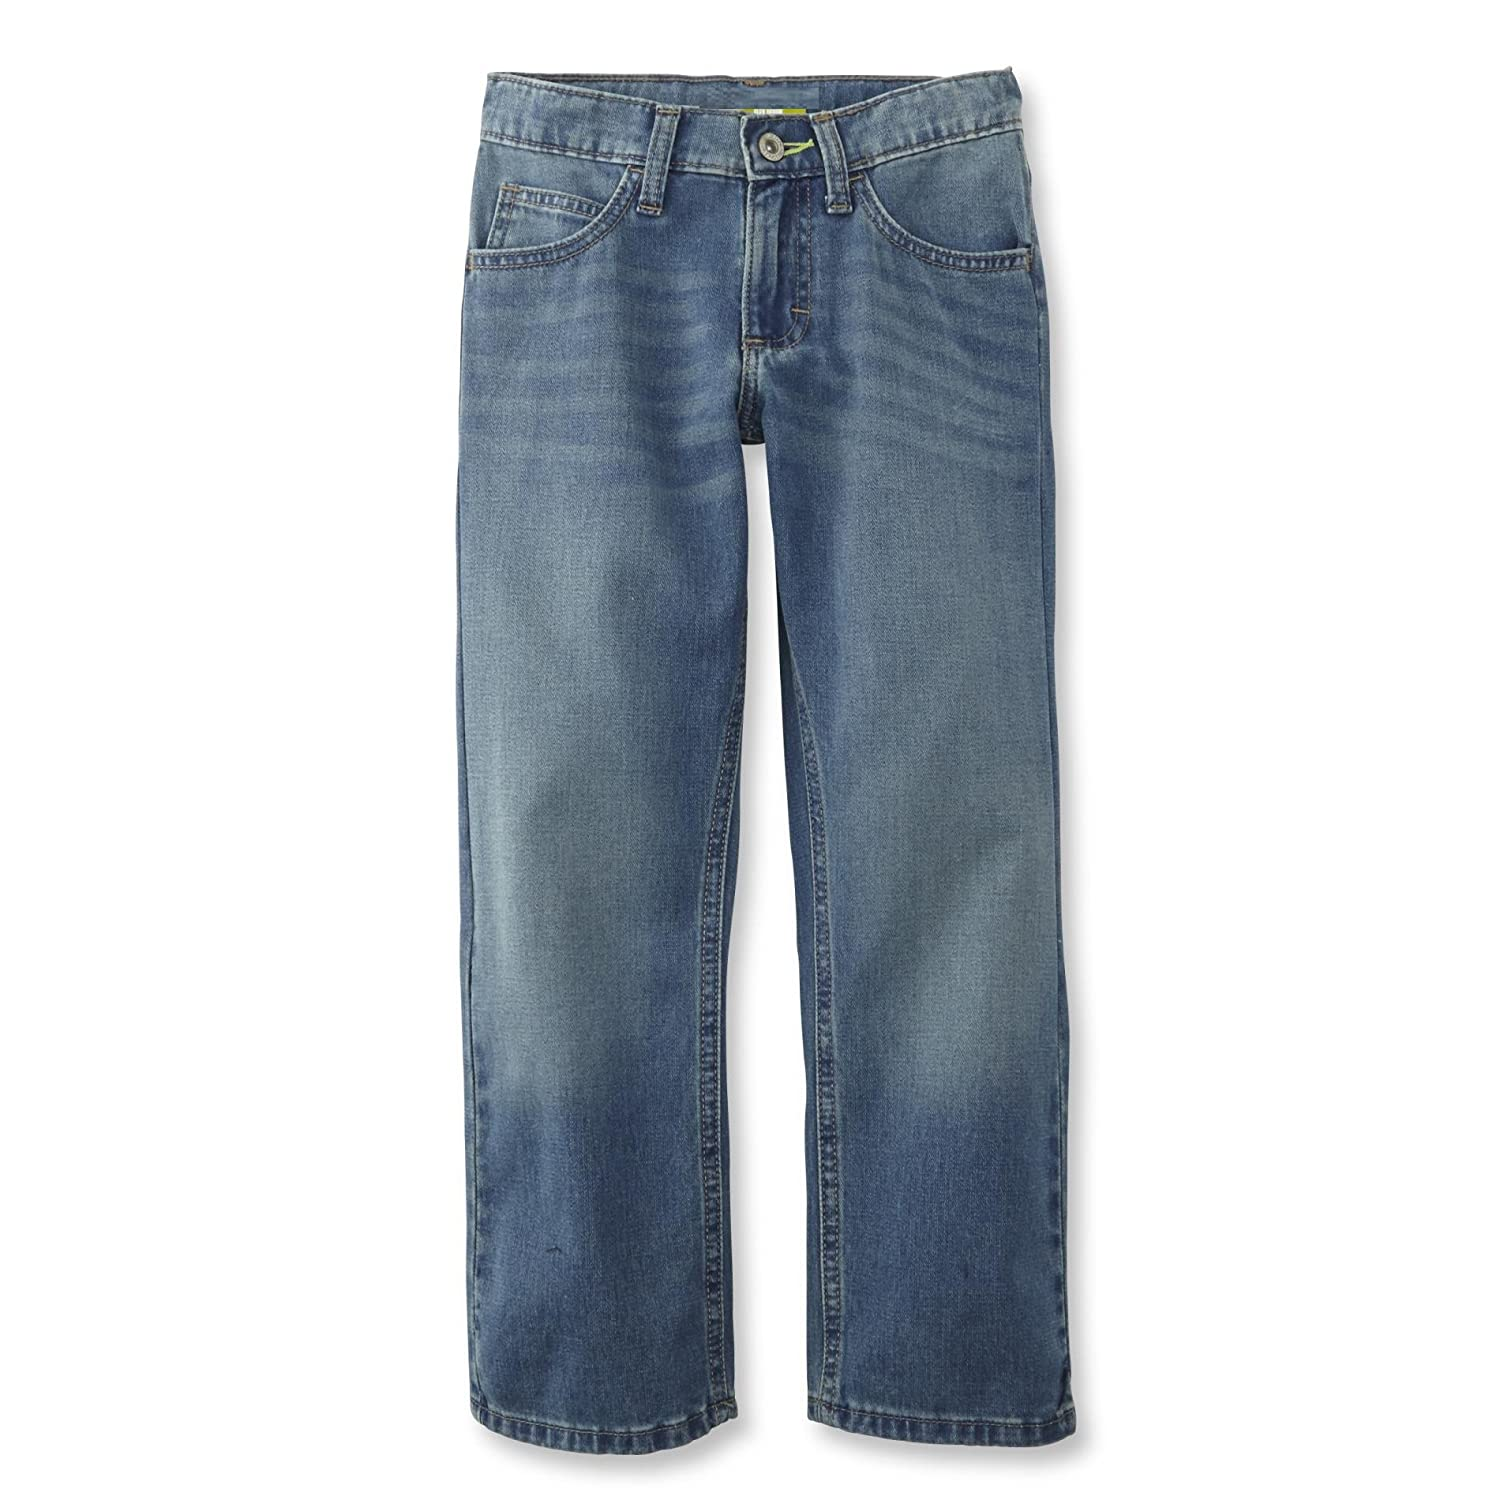 Light Wash, 8 LEE Boys Straight Leg Performance Strecth Jeans